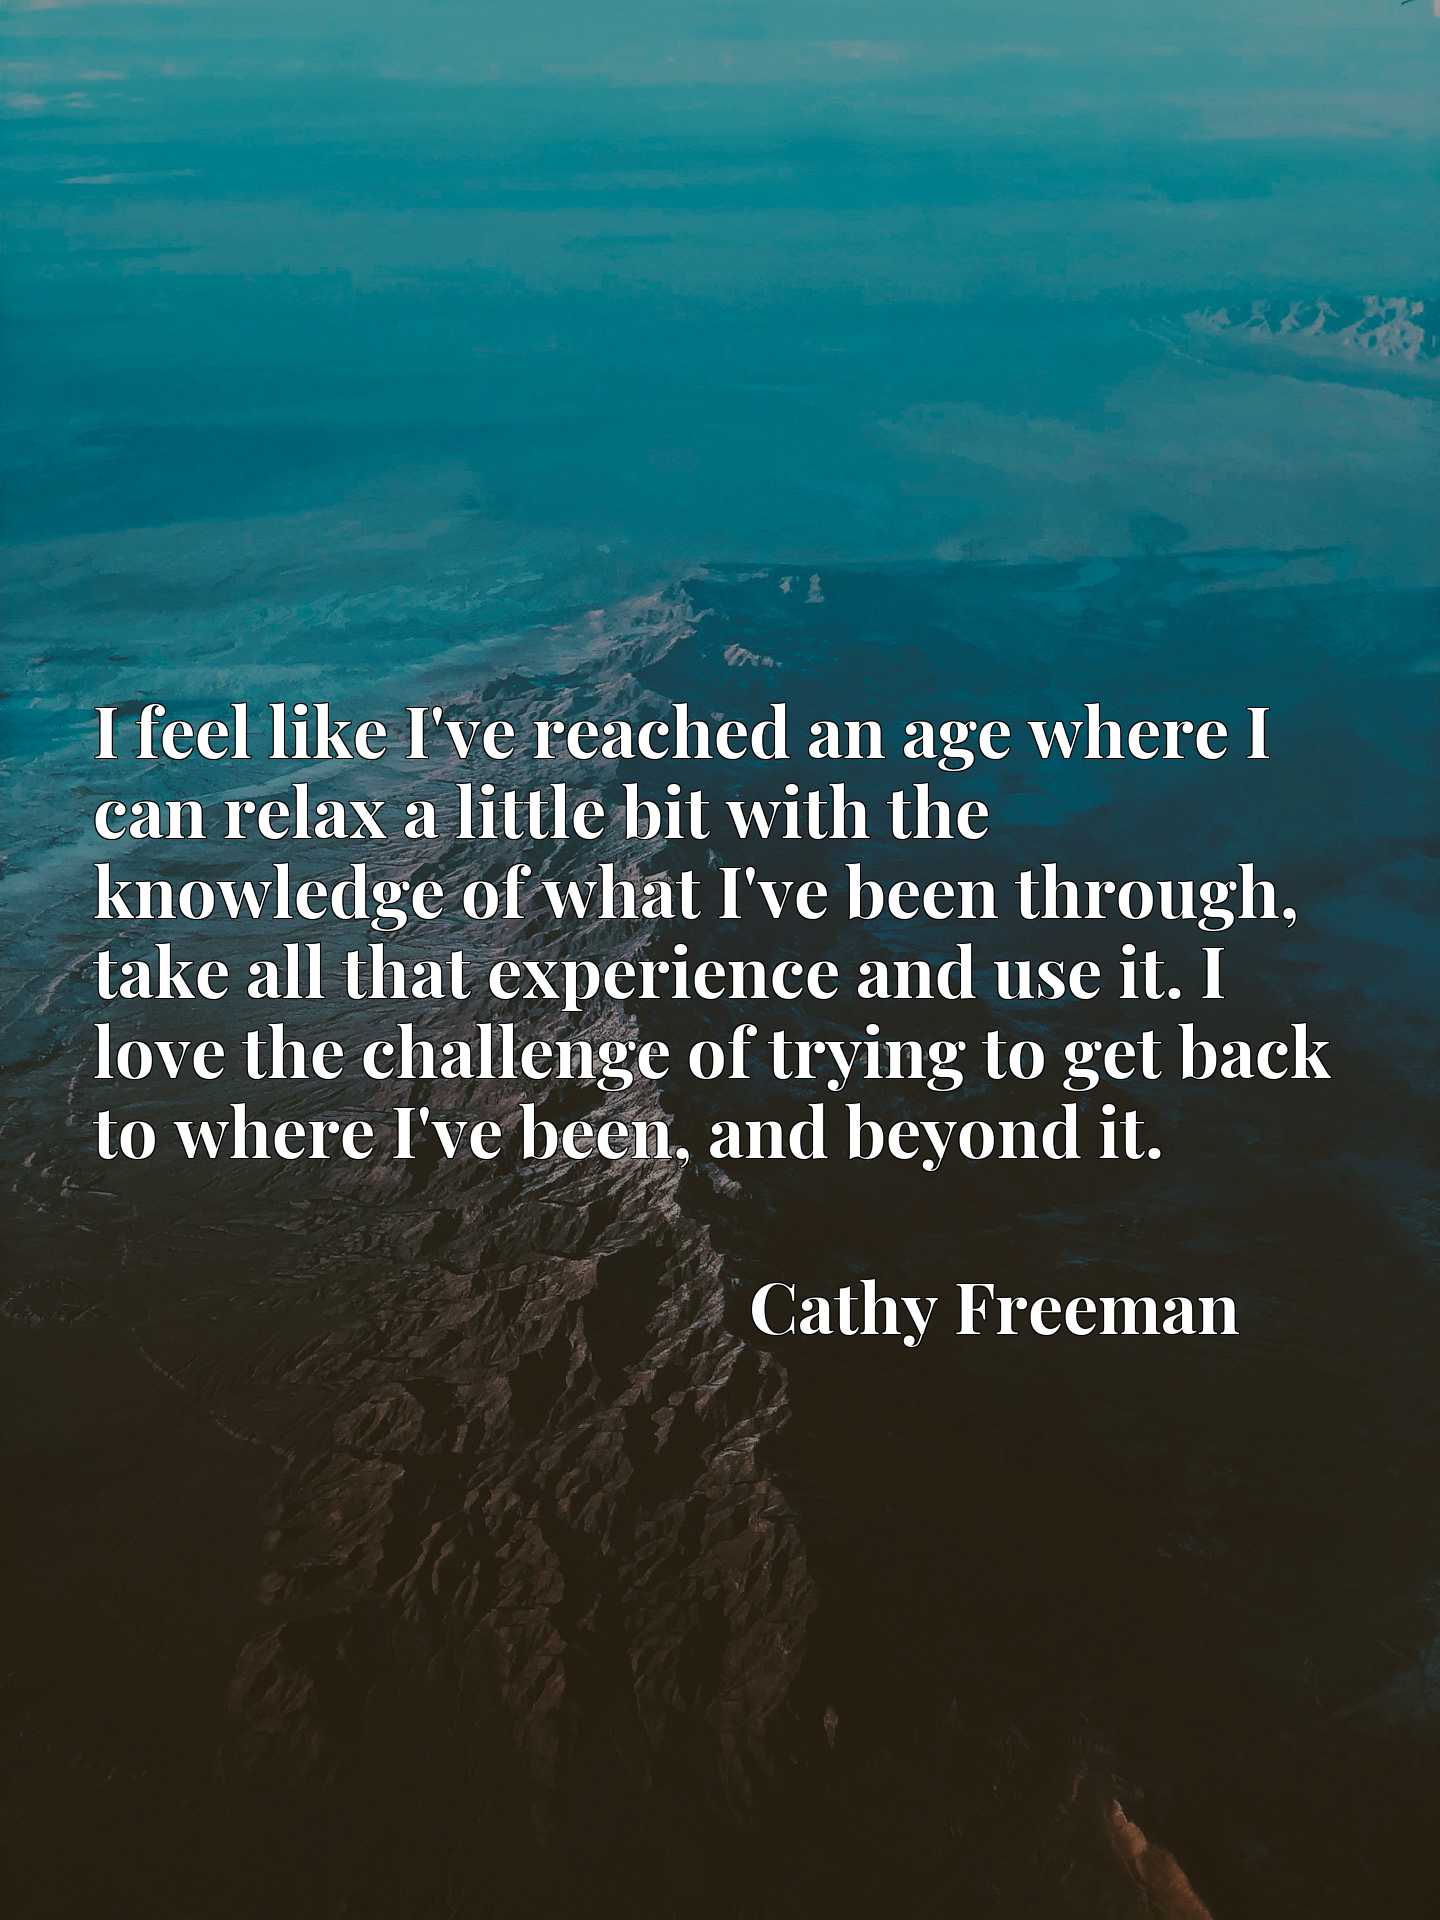 Quote Picture :I feel like I've reached an age where I can relax a little bit with the knowledge of what I've been through, take all that experience and use it. I love the challenge of trying to get back to where I've been, and beyond it.